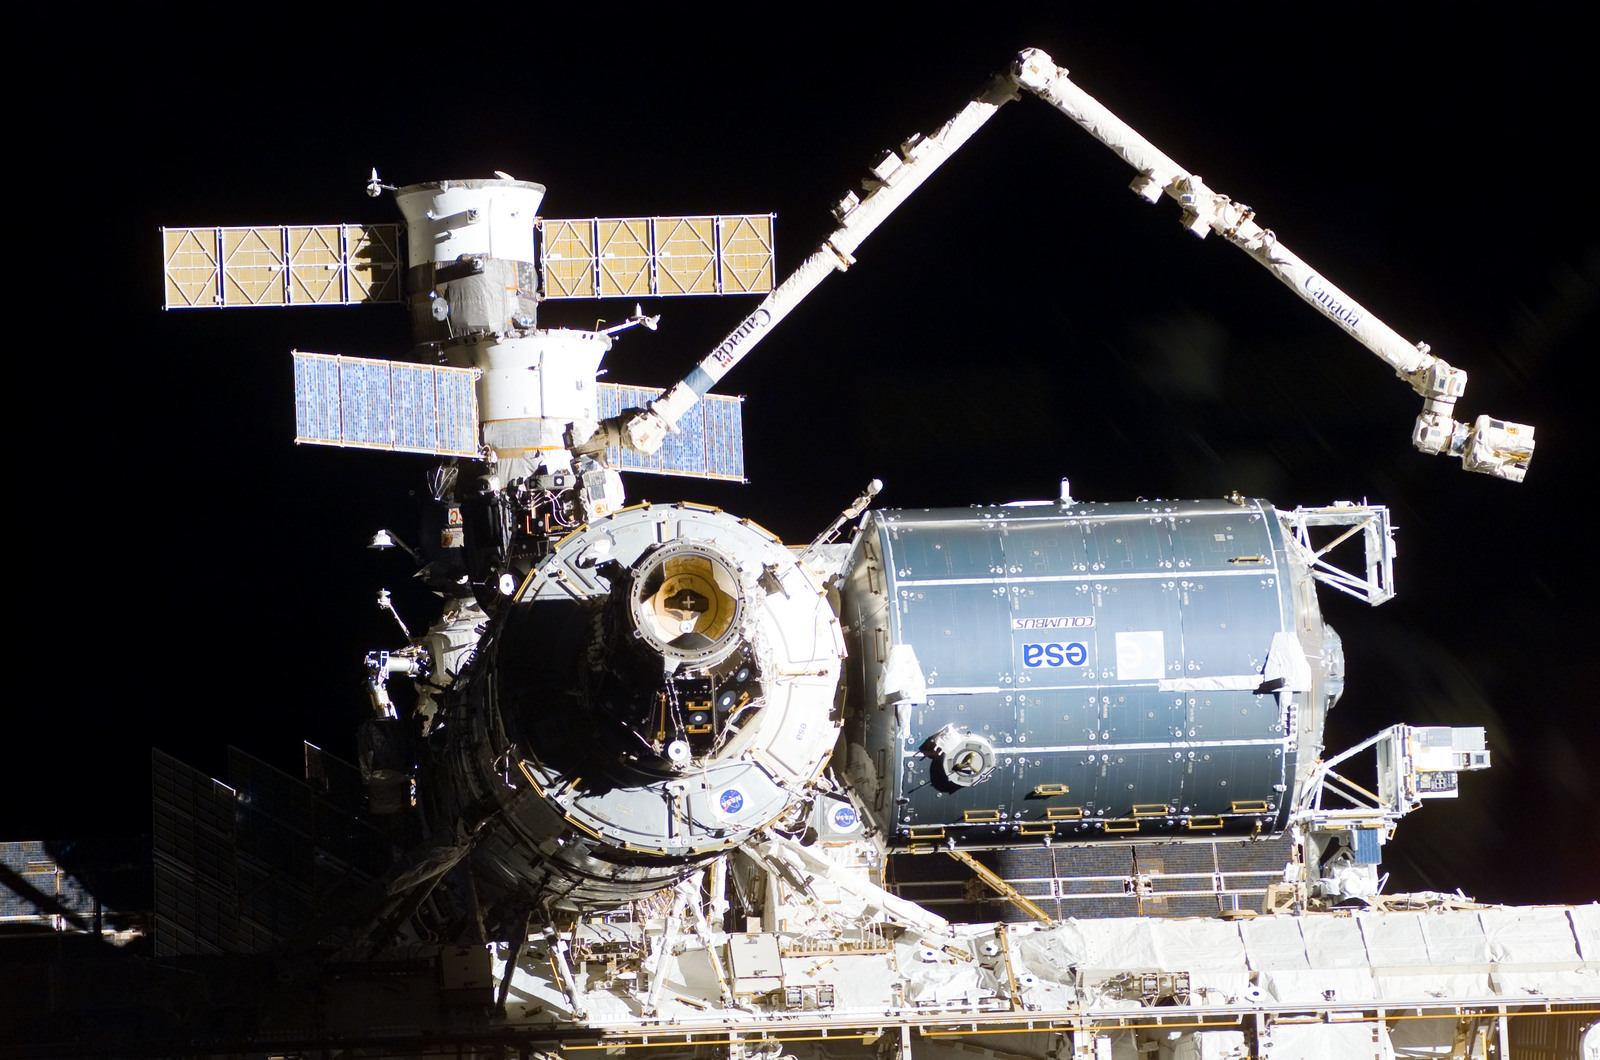 S122E009940 - STS-122 - Flyaround view of ISS after STS-122 Undocking